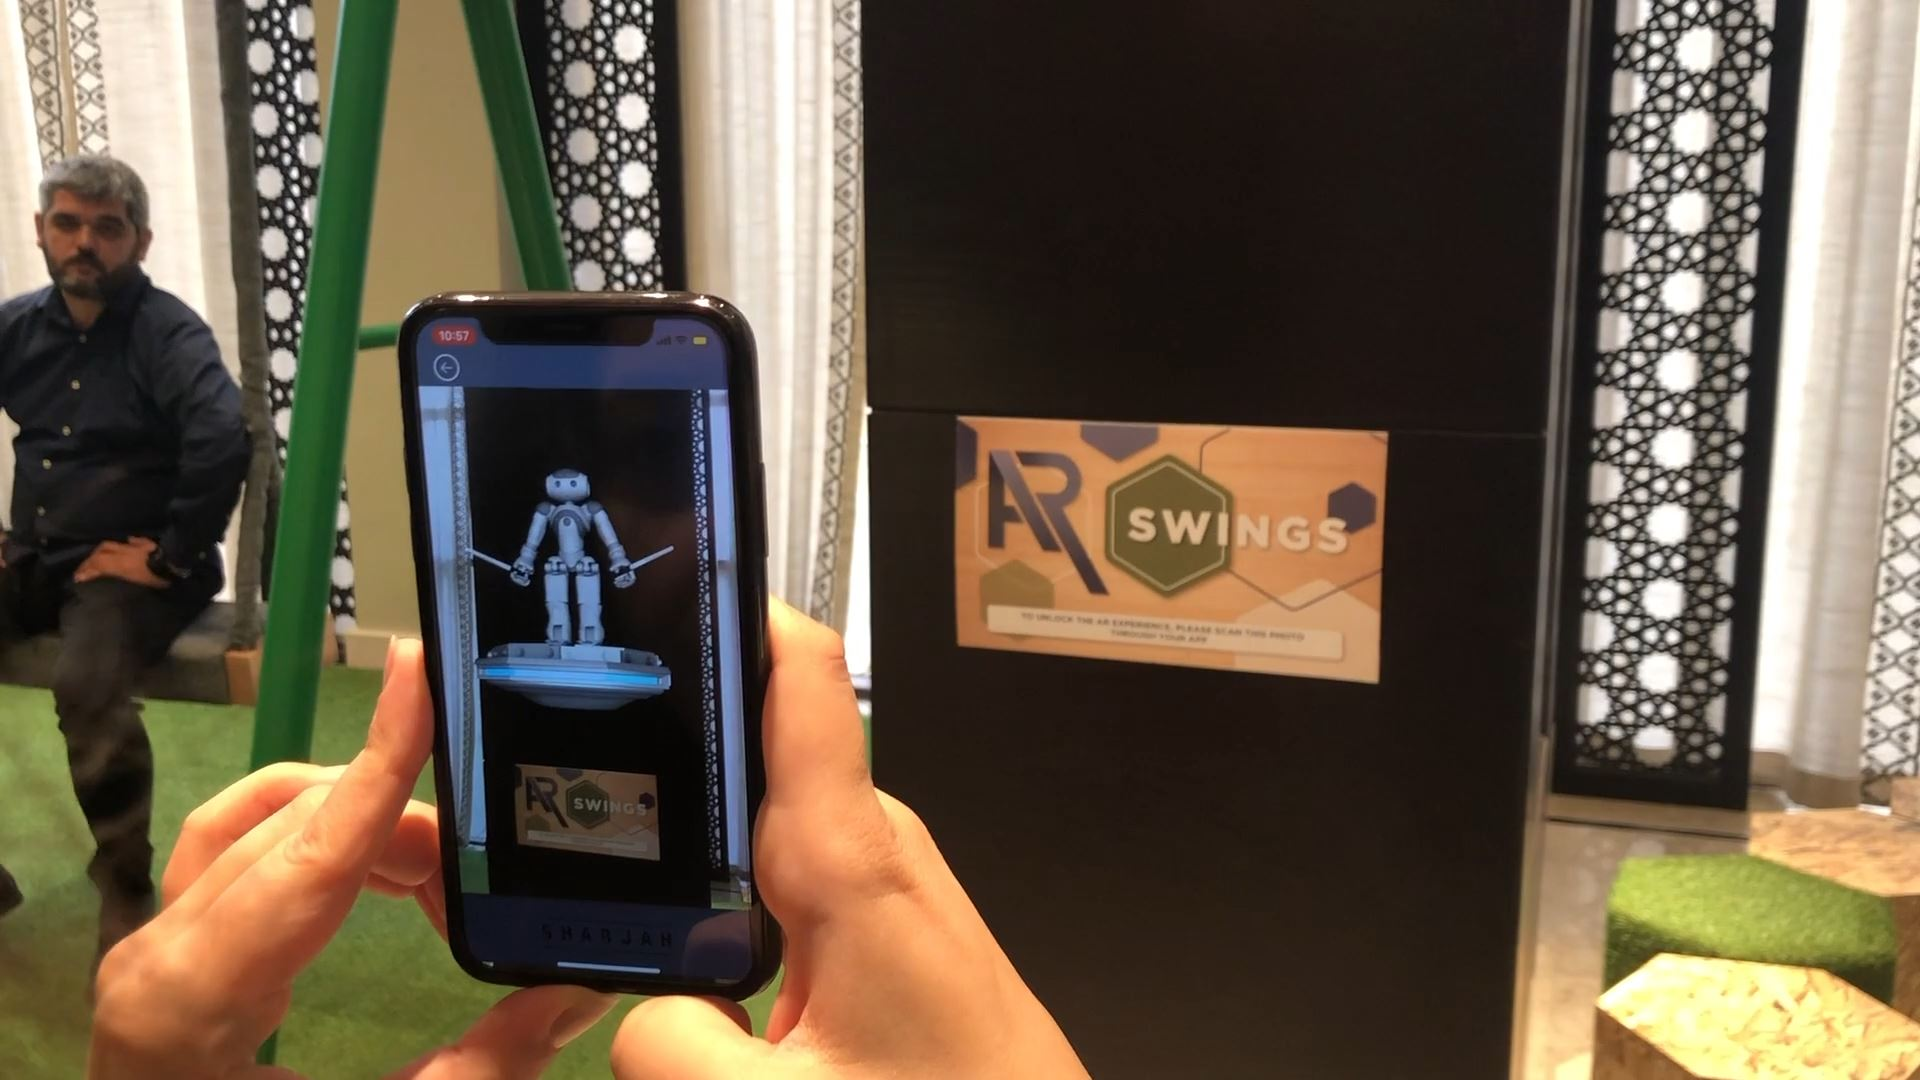 sharjah e-Government retreat interactive technology integration AR augmented reality games on mobile application